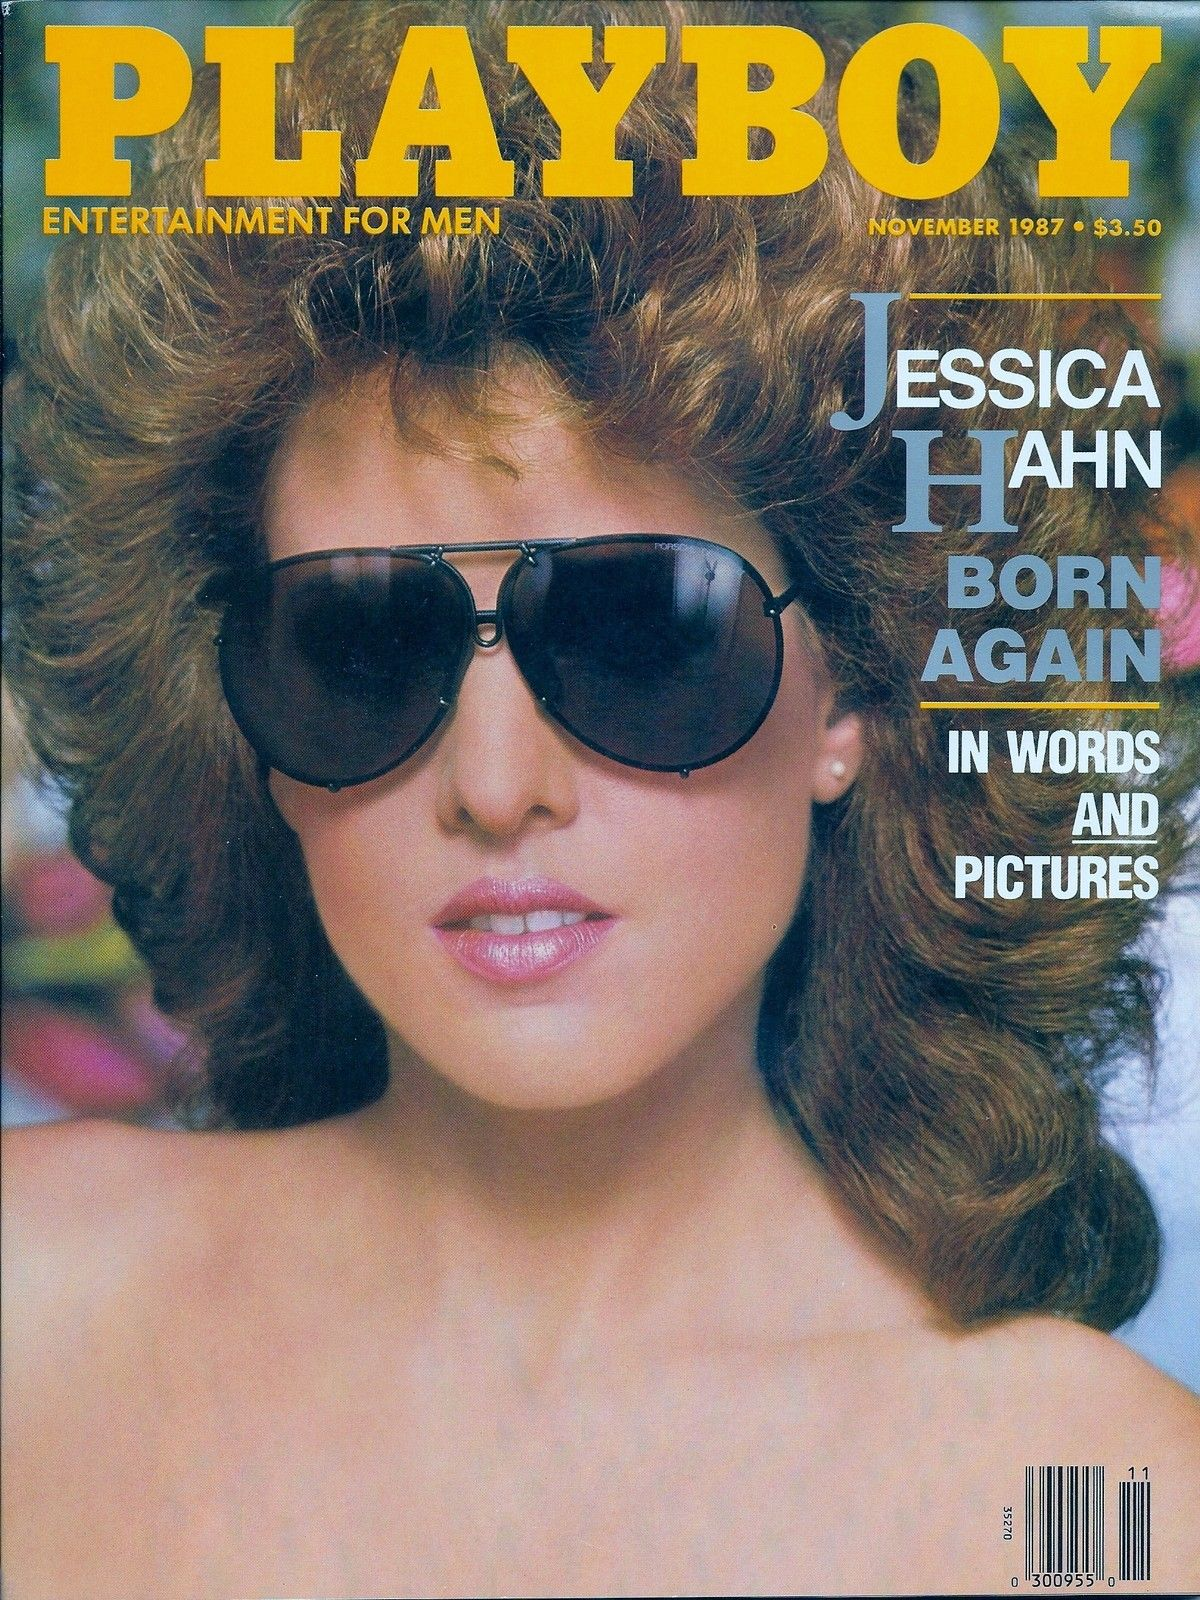 Angela Jane Melini playboy (november 1987 ) (one low price) in plastic sleeve